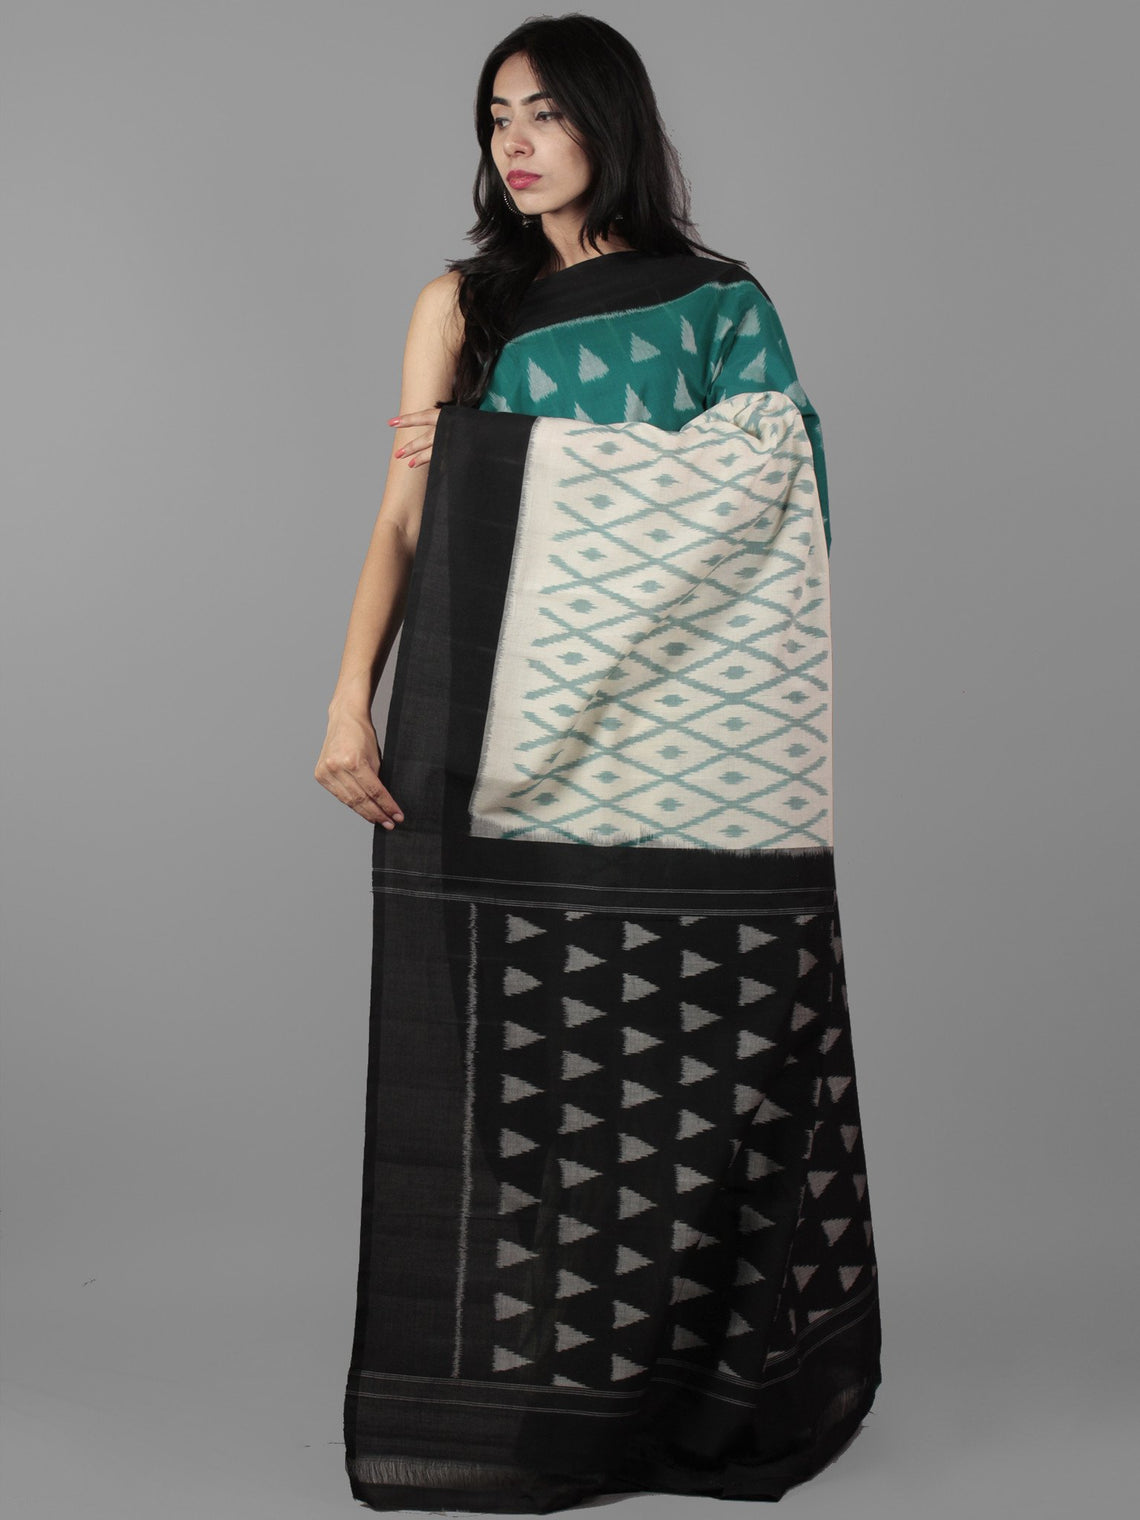 Teal Green Ivory Black Grey Ikat Handwoven Pochampally Mercerized Cotton Saree - S031702028